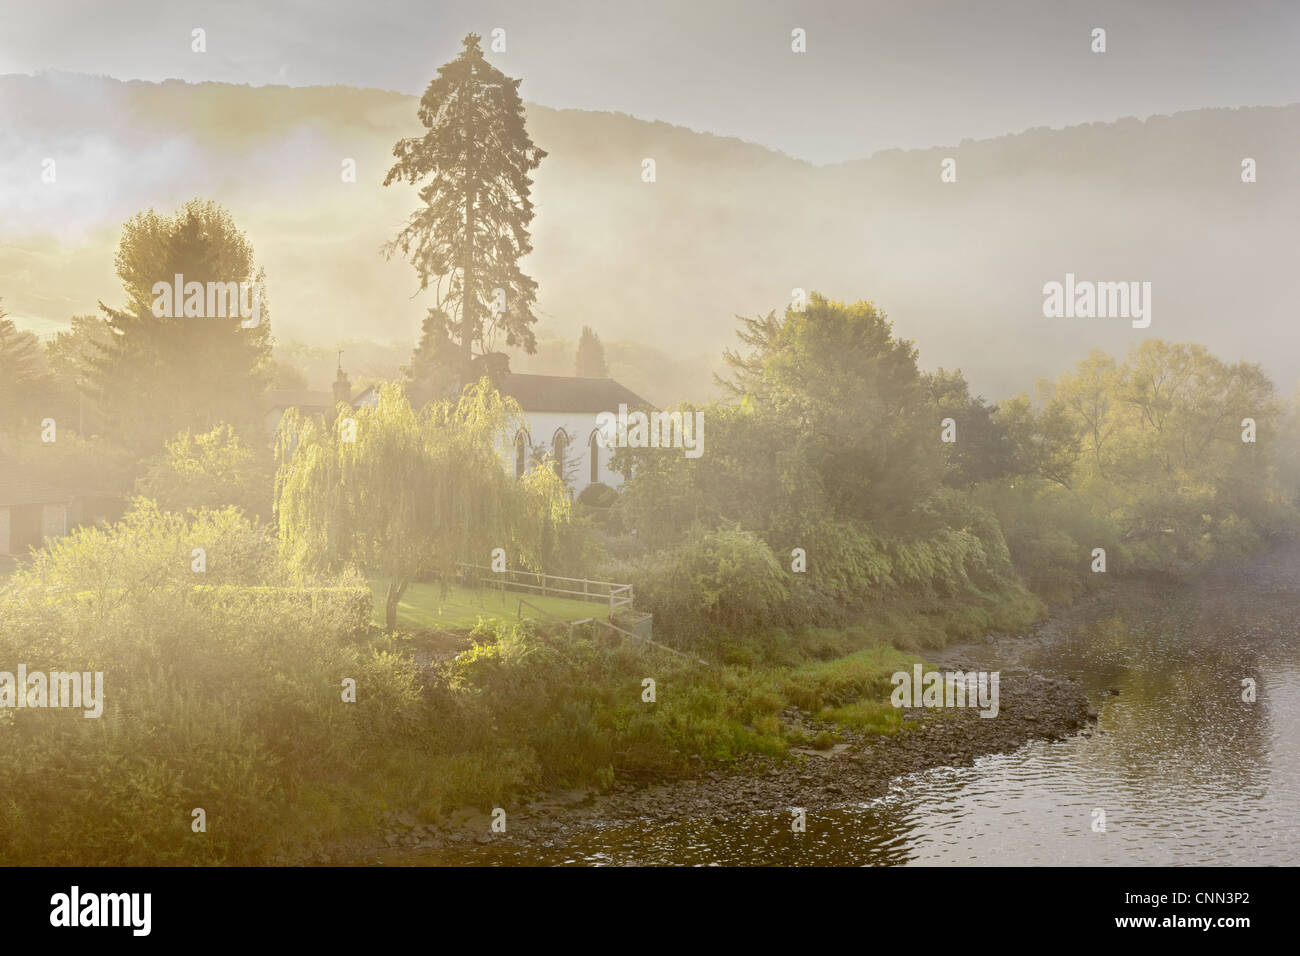 View church on riverbank in mist at dawn Moravian Church Brockweir River Wye Forest Dean Gloucestershire England - Stock Image